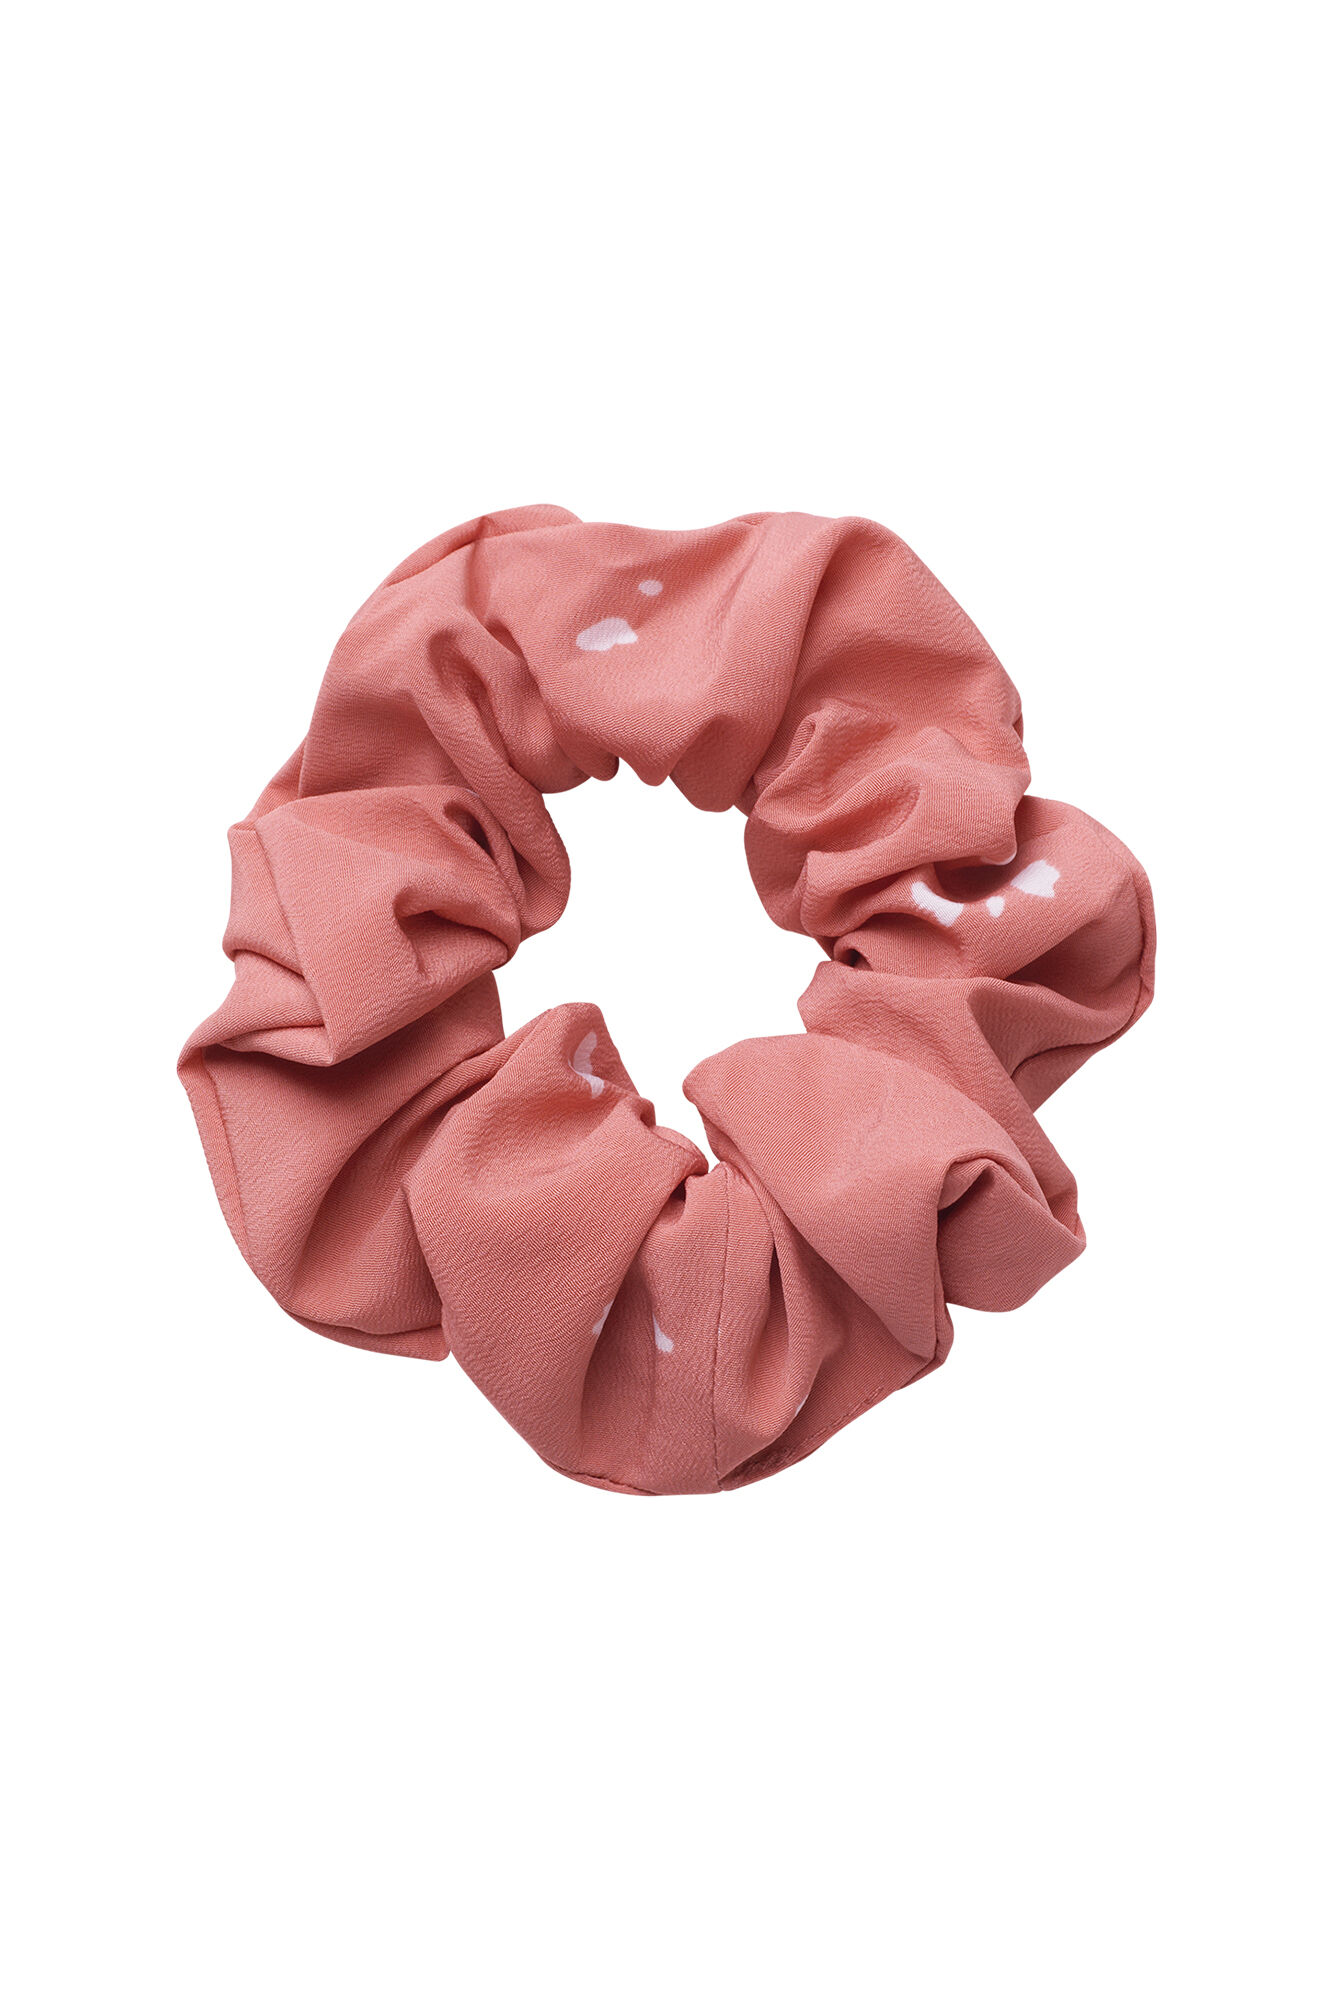 ENWELLY SCRUNCHIE AOP 6460, ROSEMARY CLOVER AOP